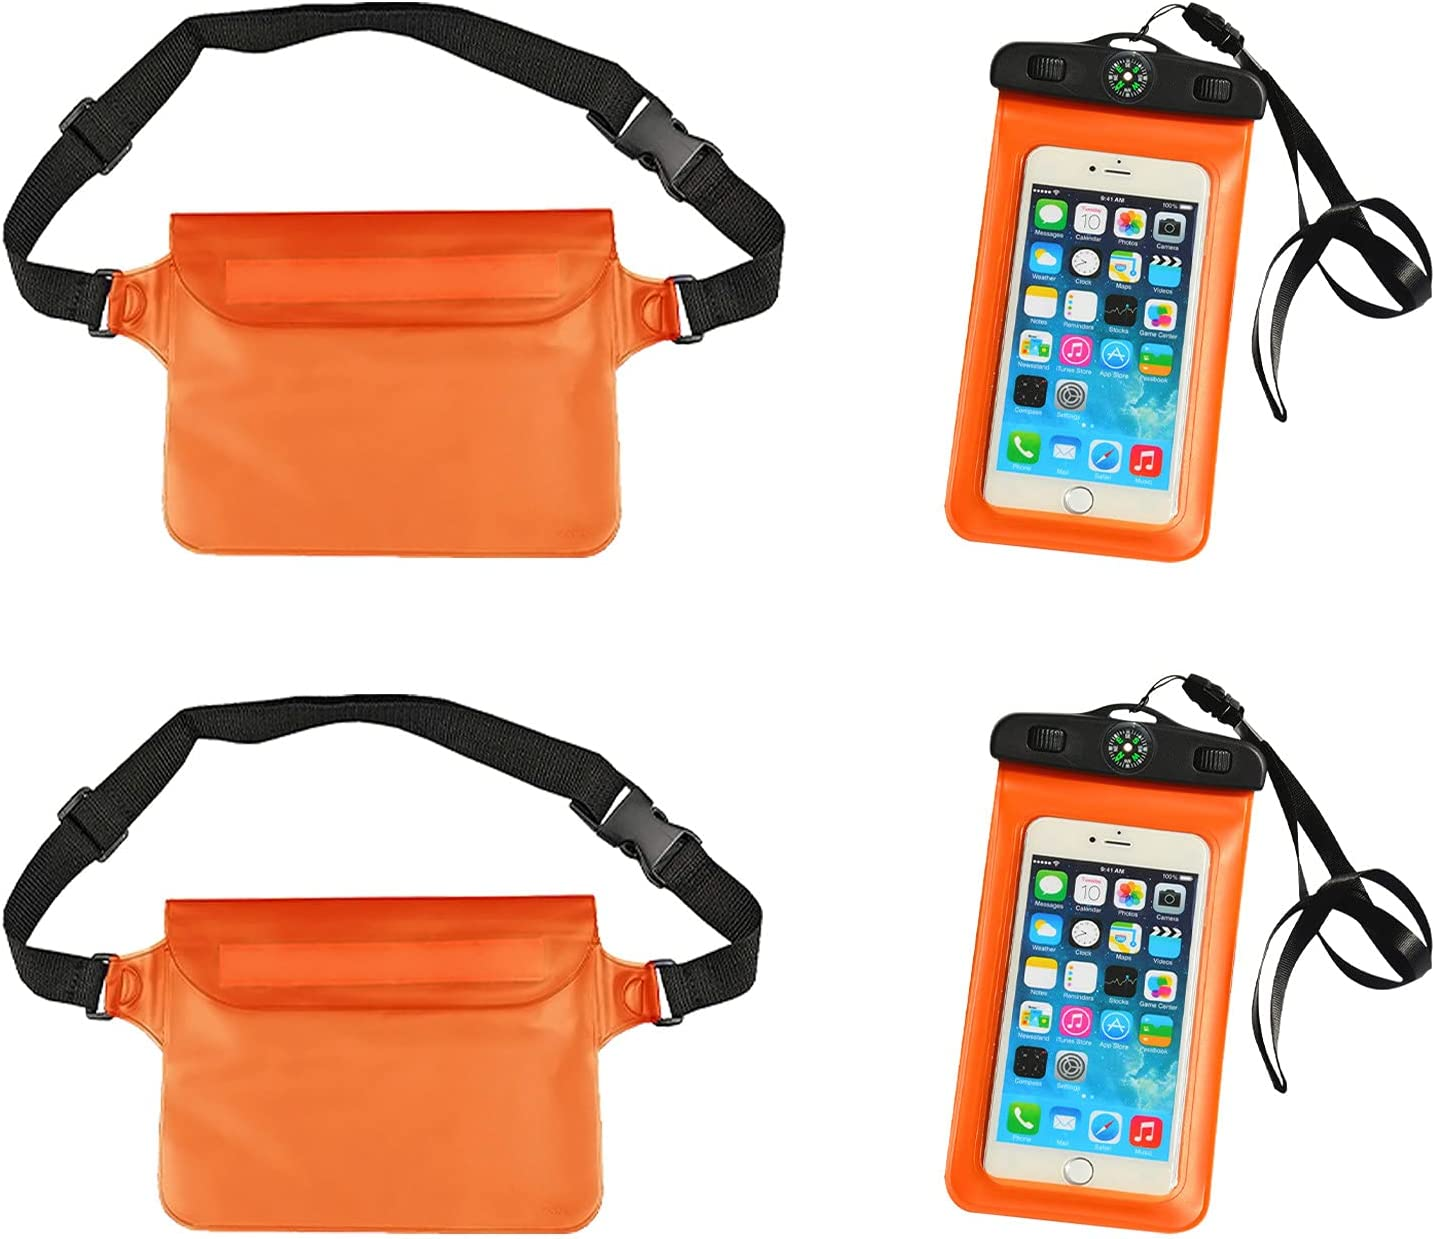 Waterproof Phone Pouch, Universal Waterproof Pouch Cellphone Dry Bag Case, Underwater Cell Phone Dry Bag, Universal Cell Phone Waterproof Case for Beach Kayaking Travel, 2 Pack (Orange)